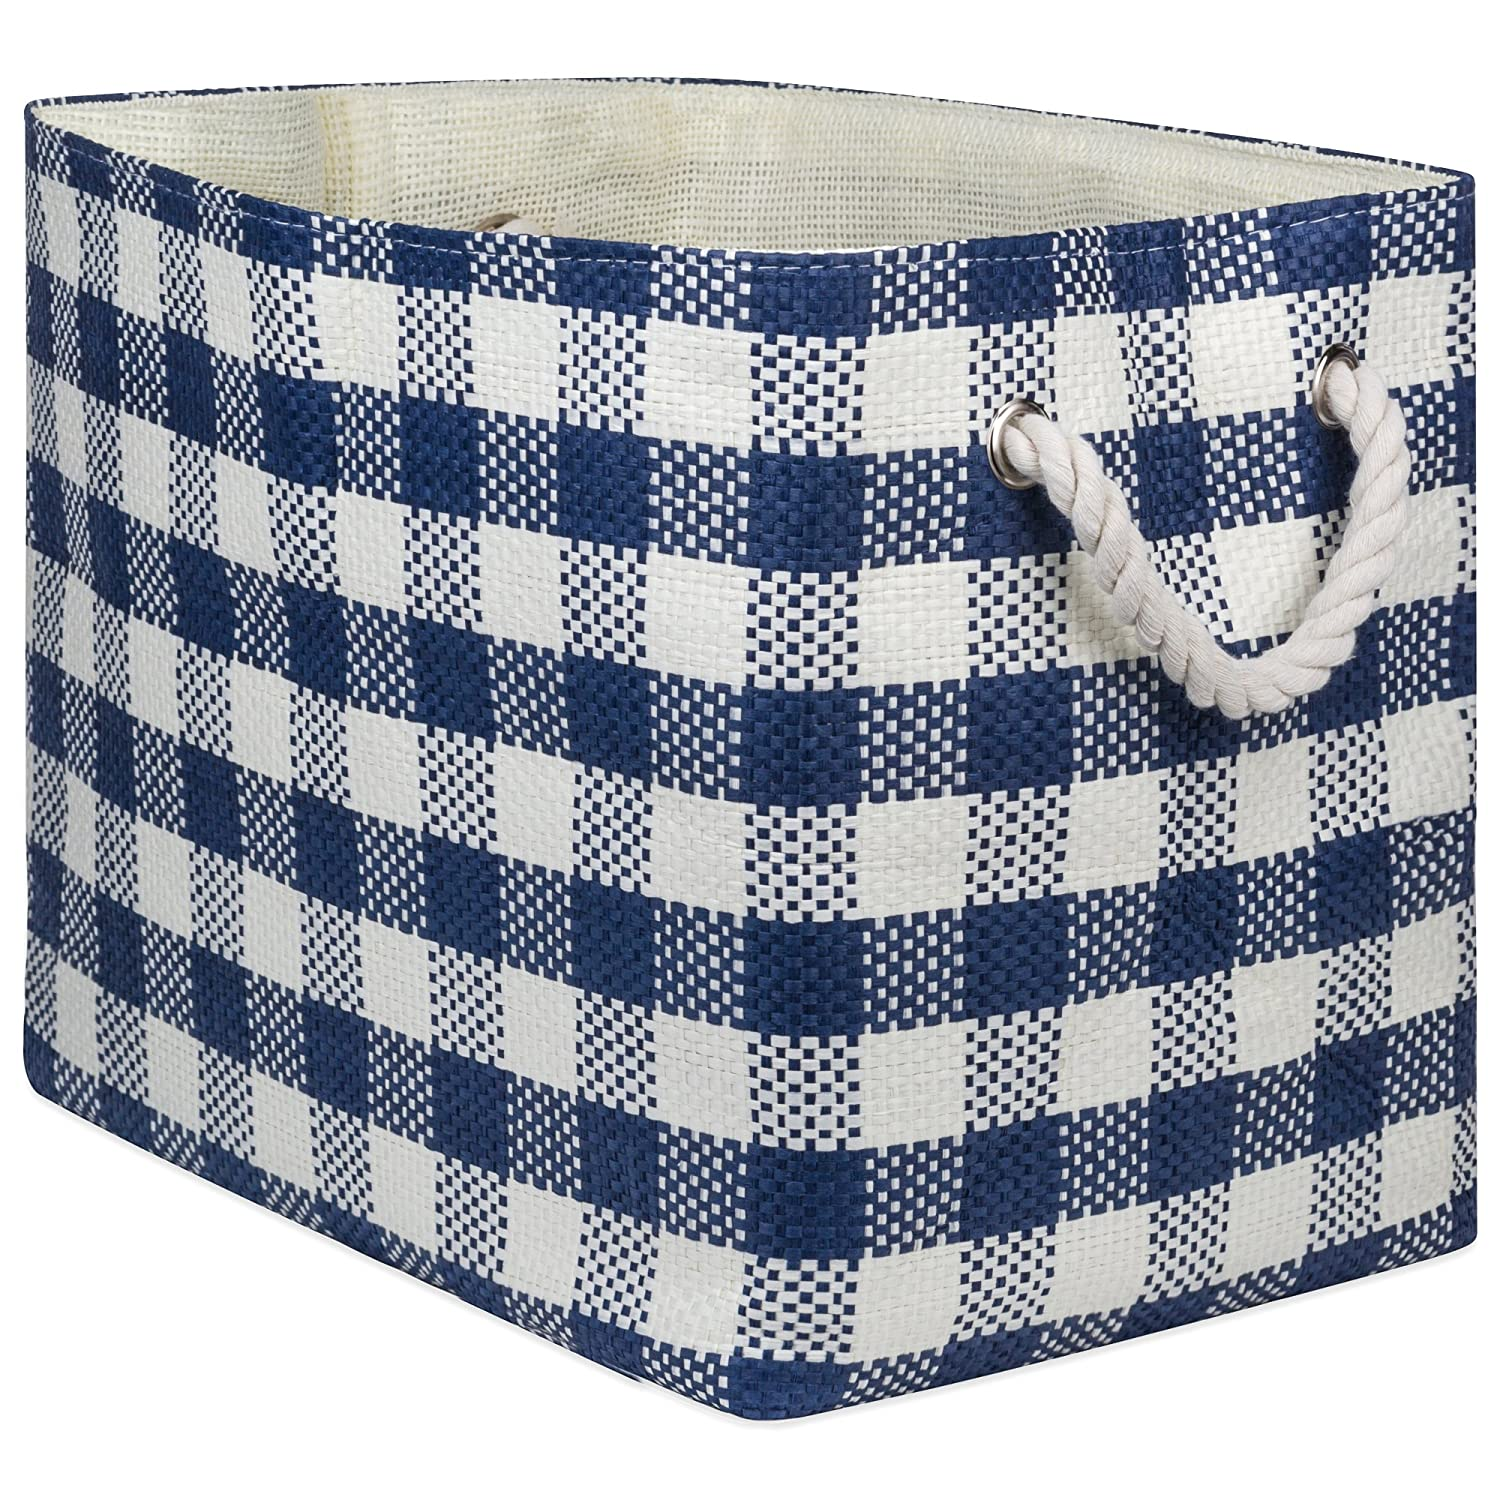 "DII Oversize Woven Paper Storage Basket Or Bin (Medium - 15x10x12""), Aqua Checkered CAMZ10112"